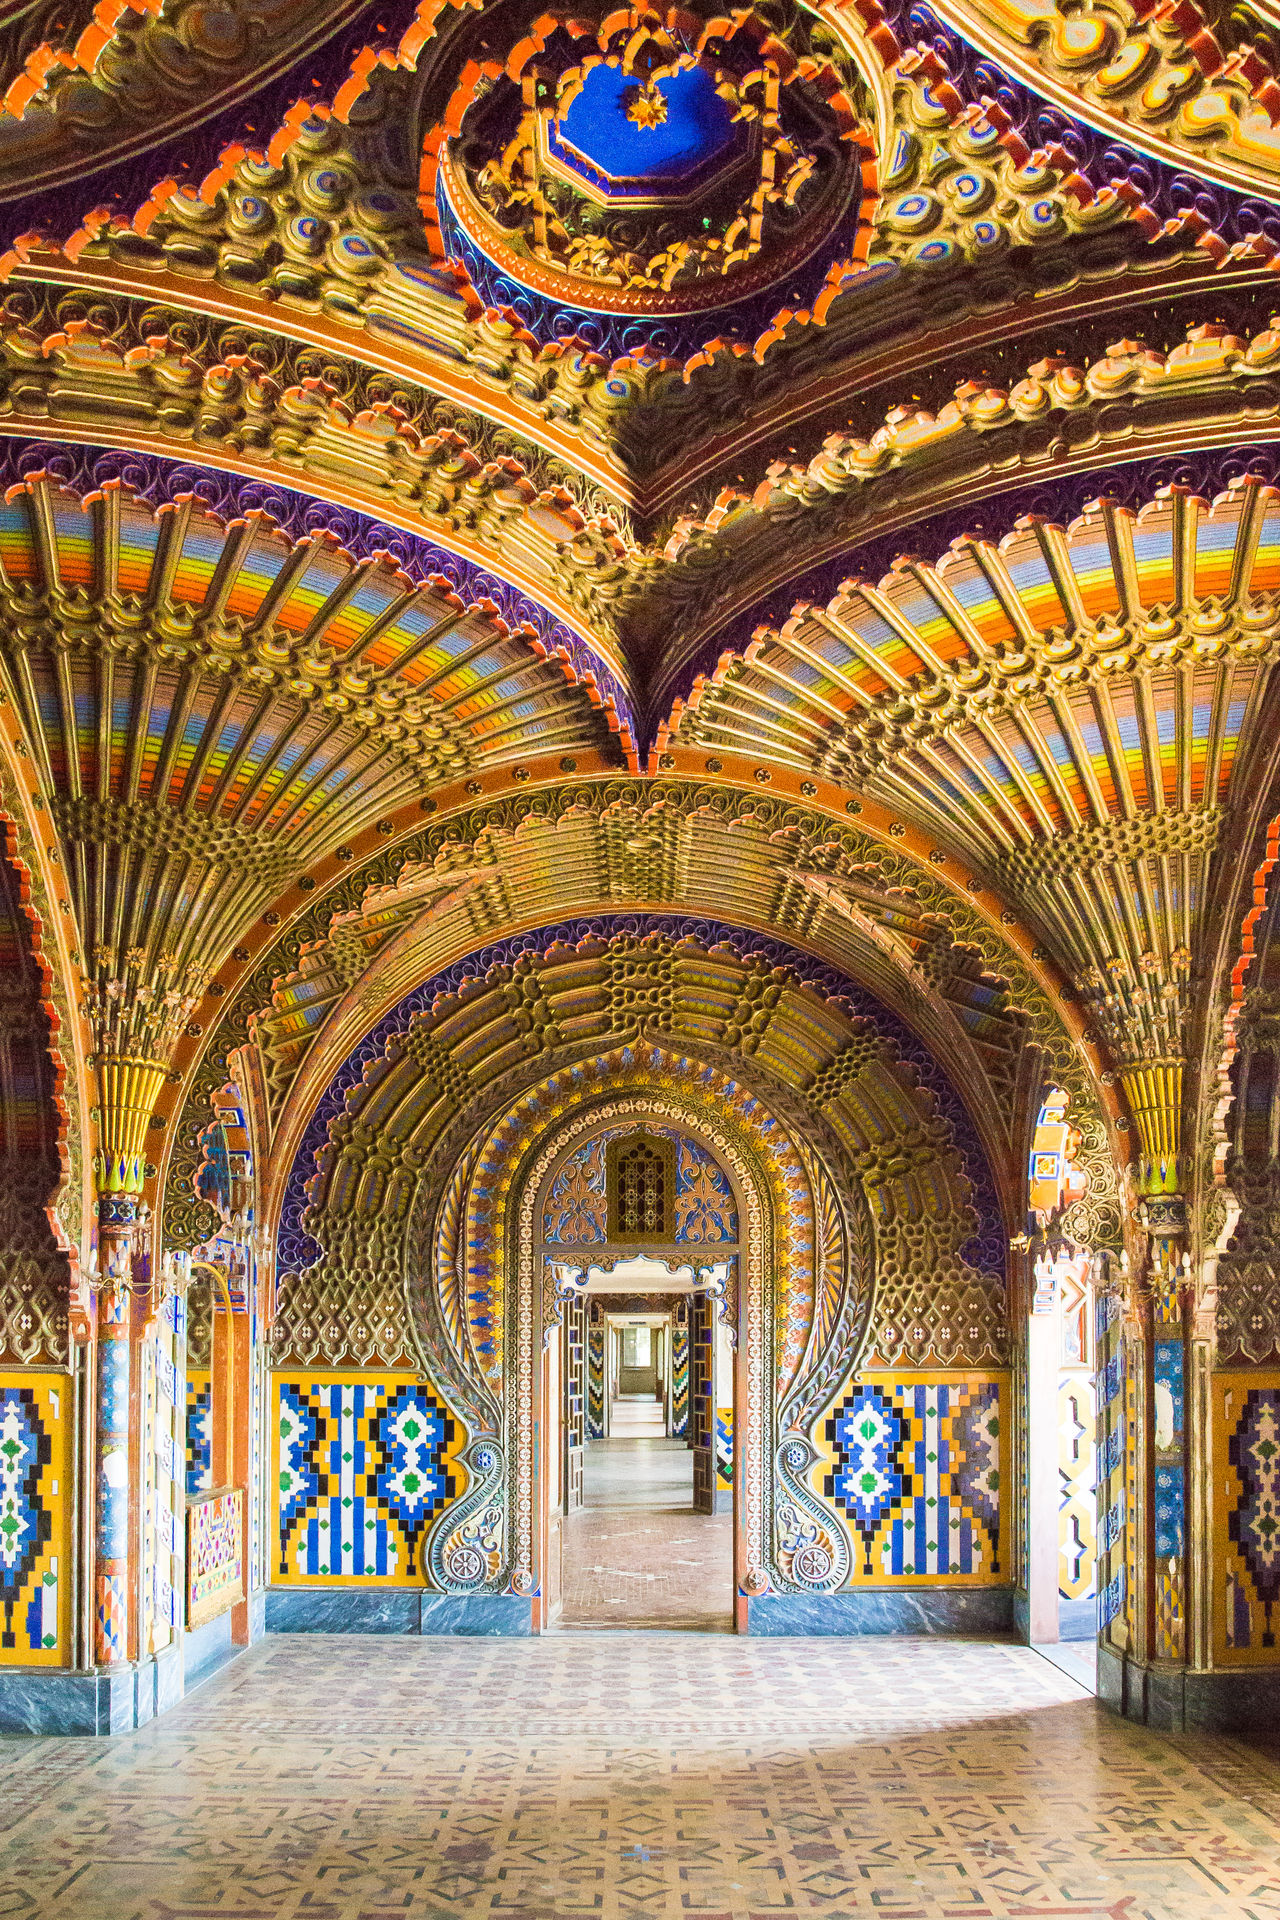 Arabic Arabic Architecture Arabic Style Arched Architectural Column Architectural Feature Architecture Blackandwhite Ceiling Church Corridor Door Golden Indoors  Mosaic Multi Colored Point Religion Sammezzano Sammezzanocastle Spirituality Textura Travel Destinations